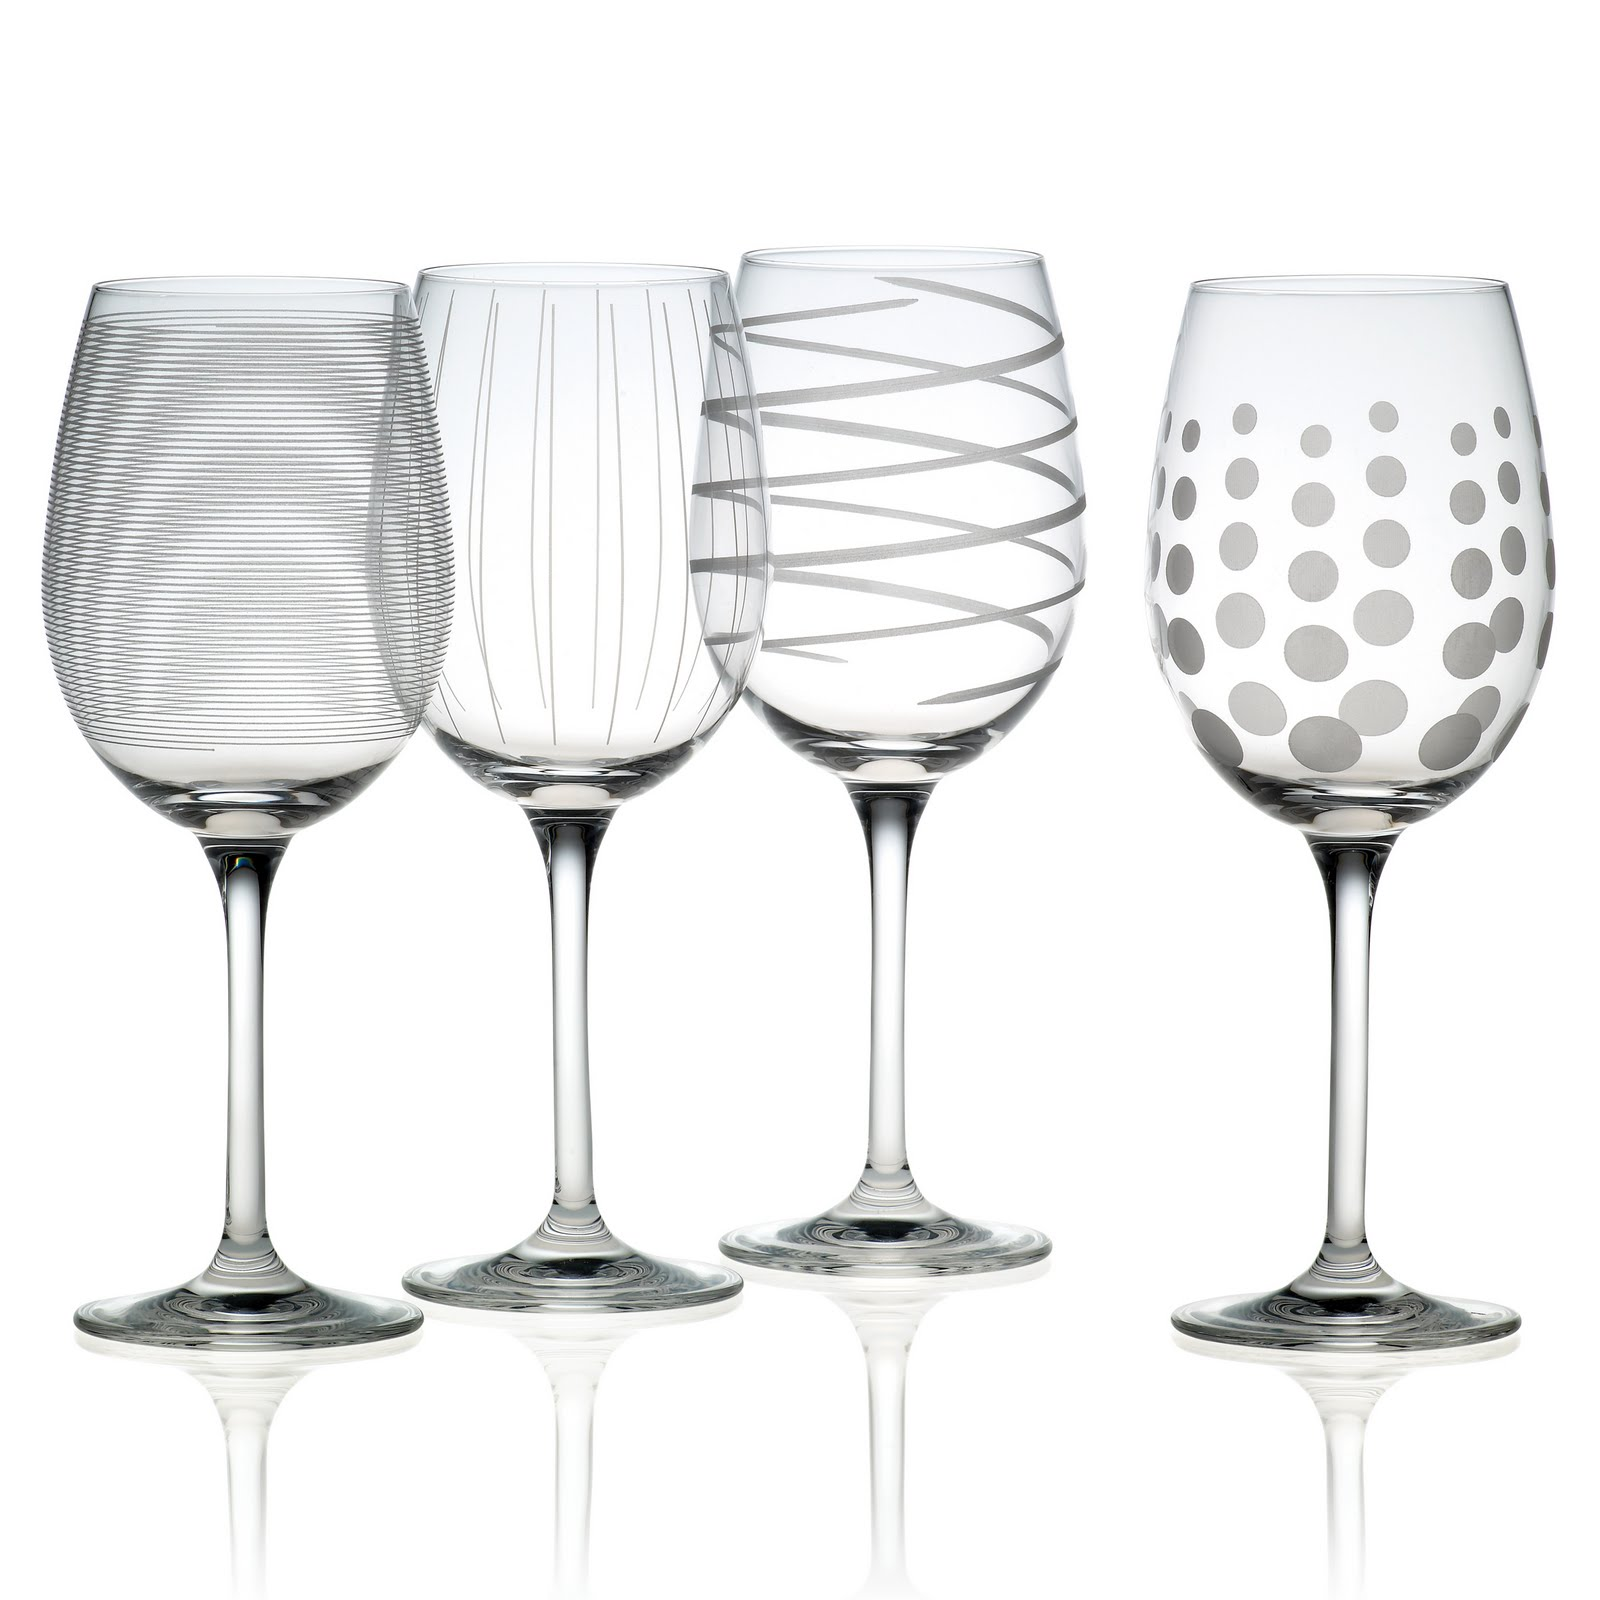 Admirable Mikasa Wine Glasses 4 Pcs